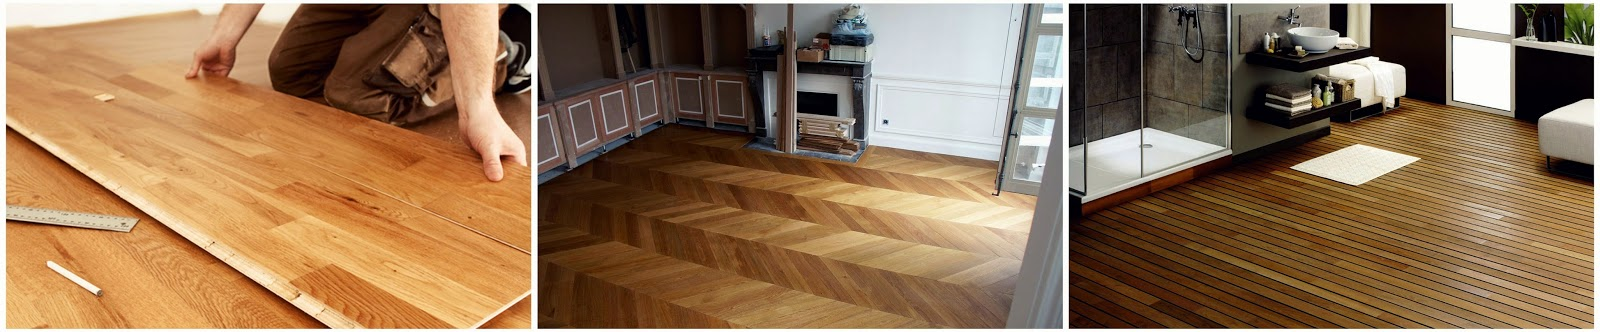 pose parquet paris 20